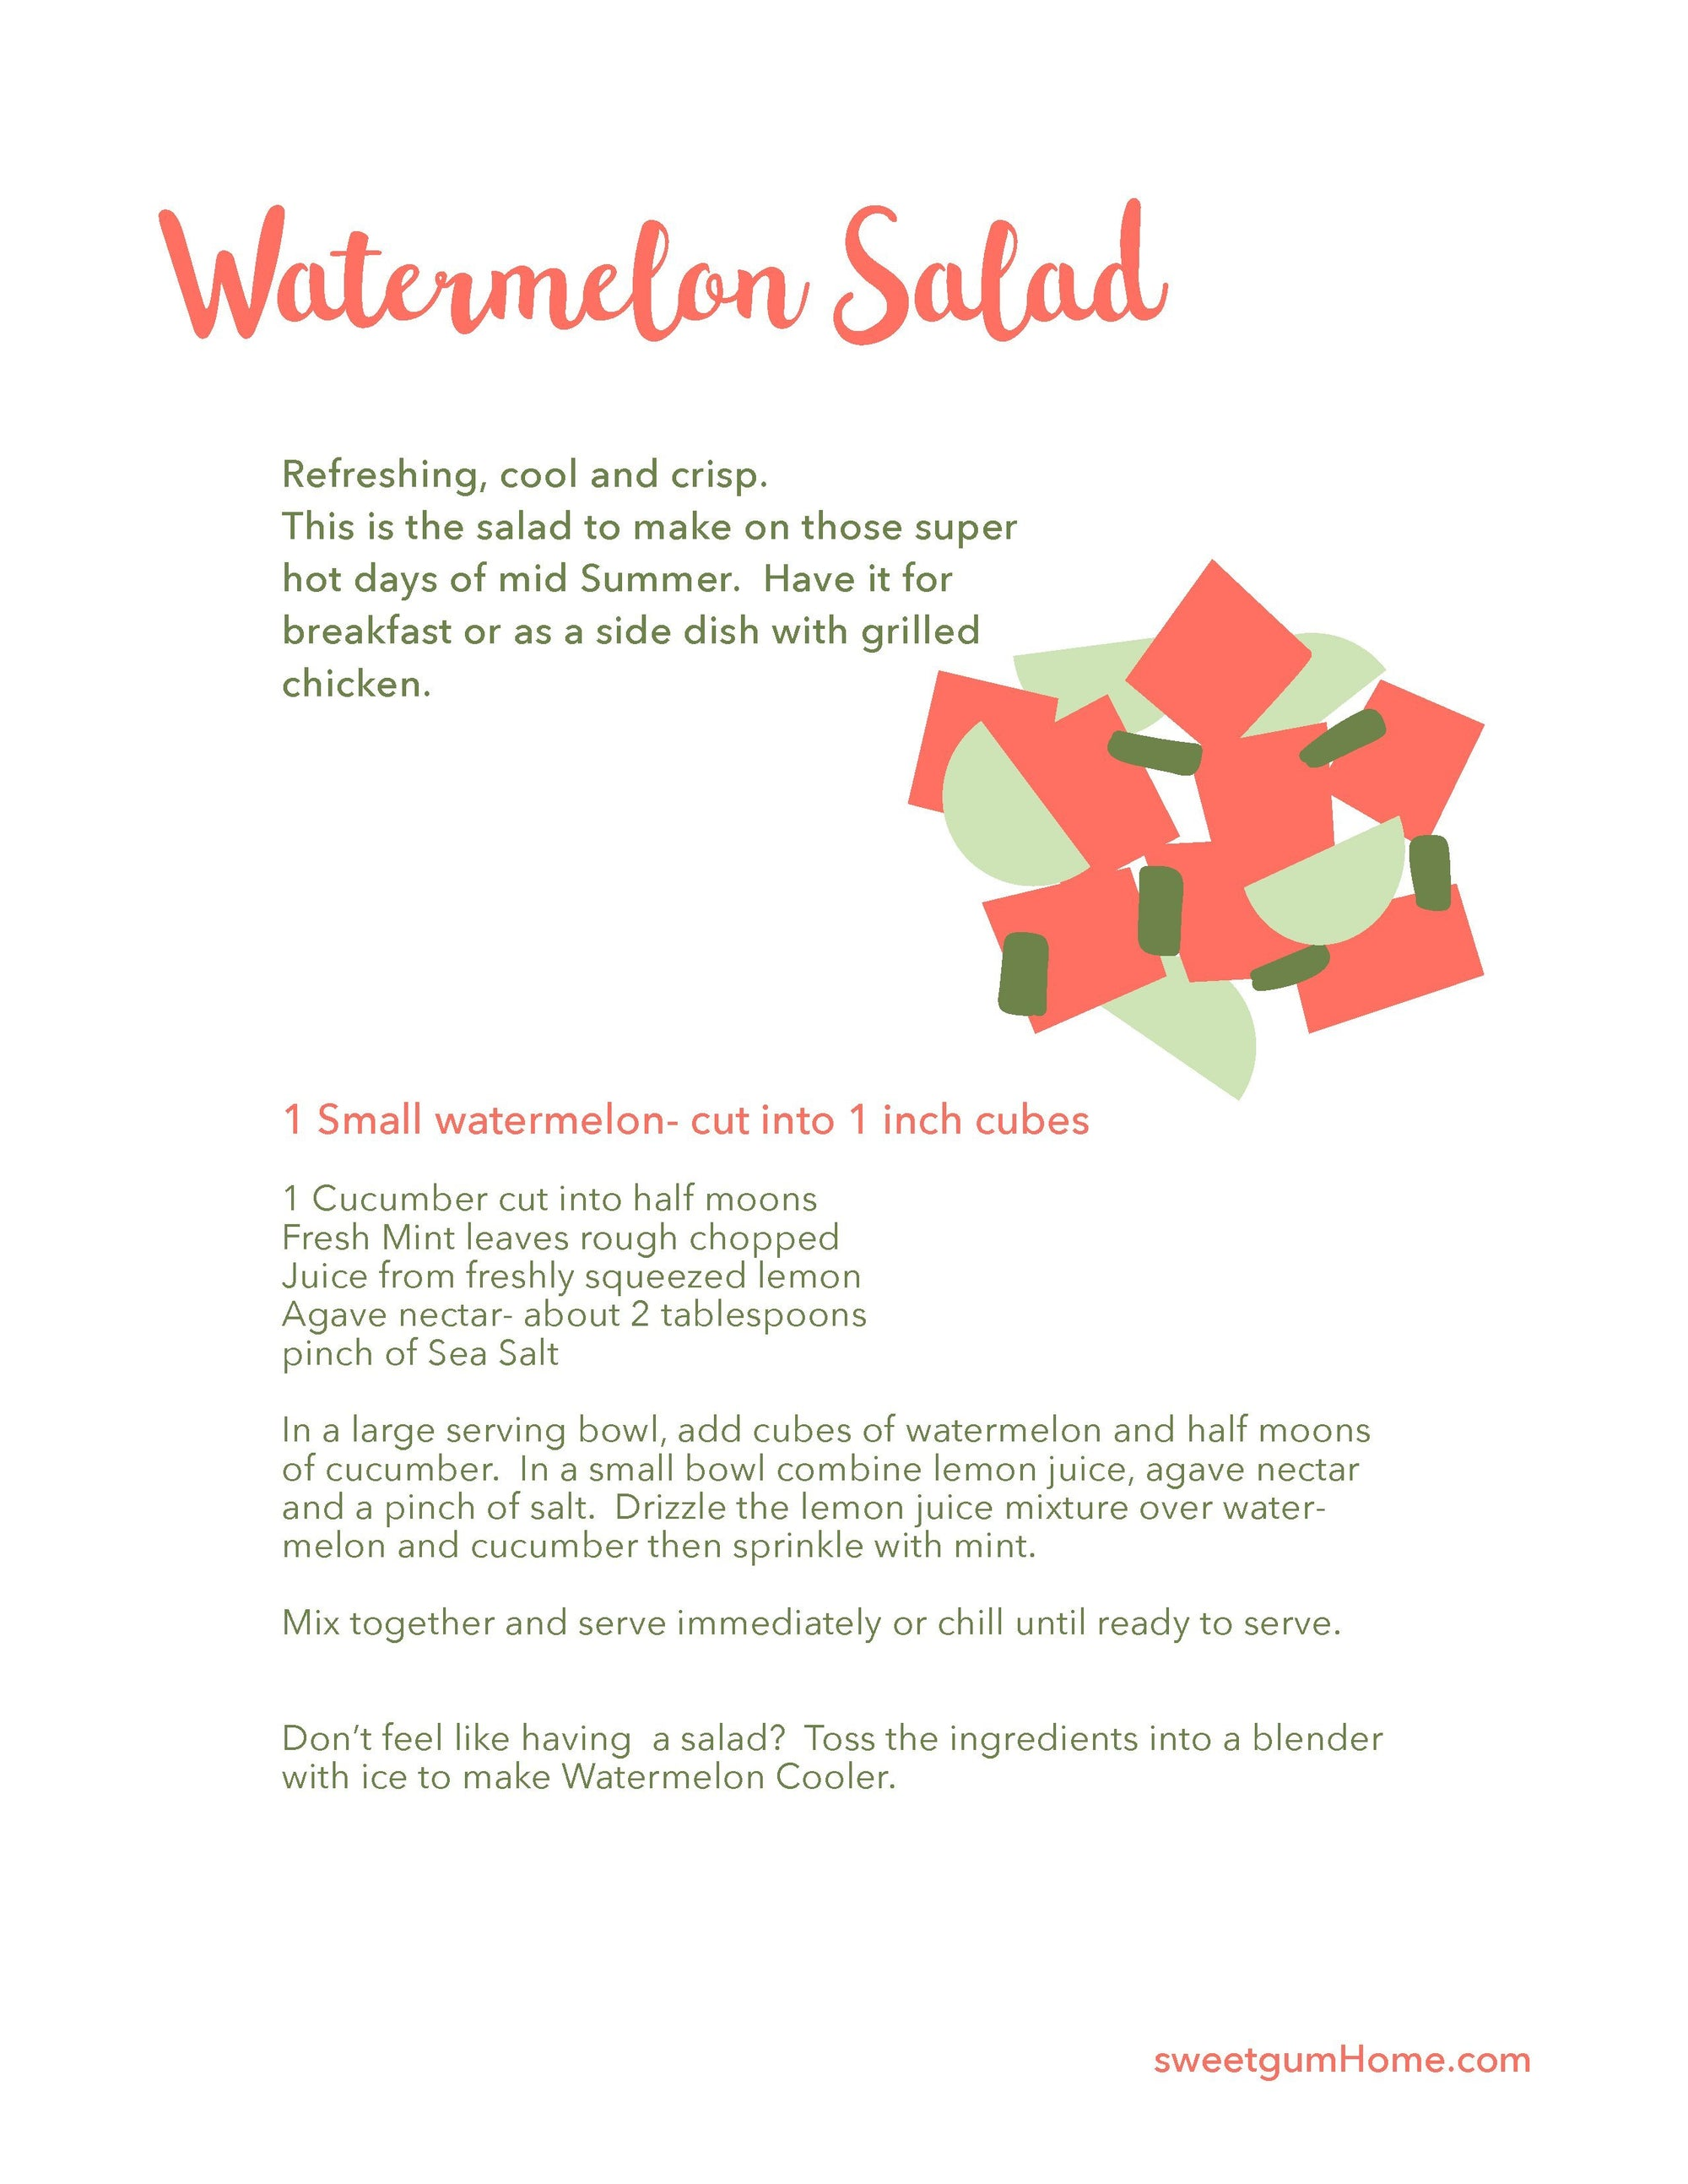 Watermelon Salad Recipe sweetgum textiles company, LLC